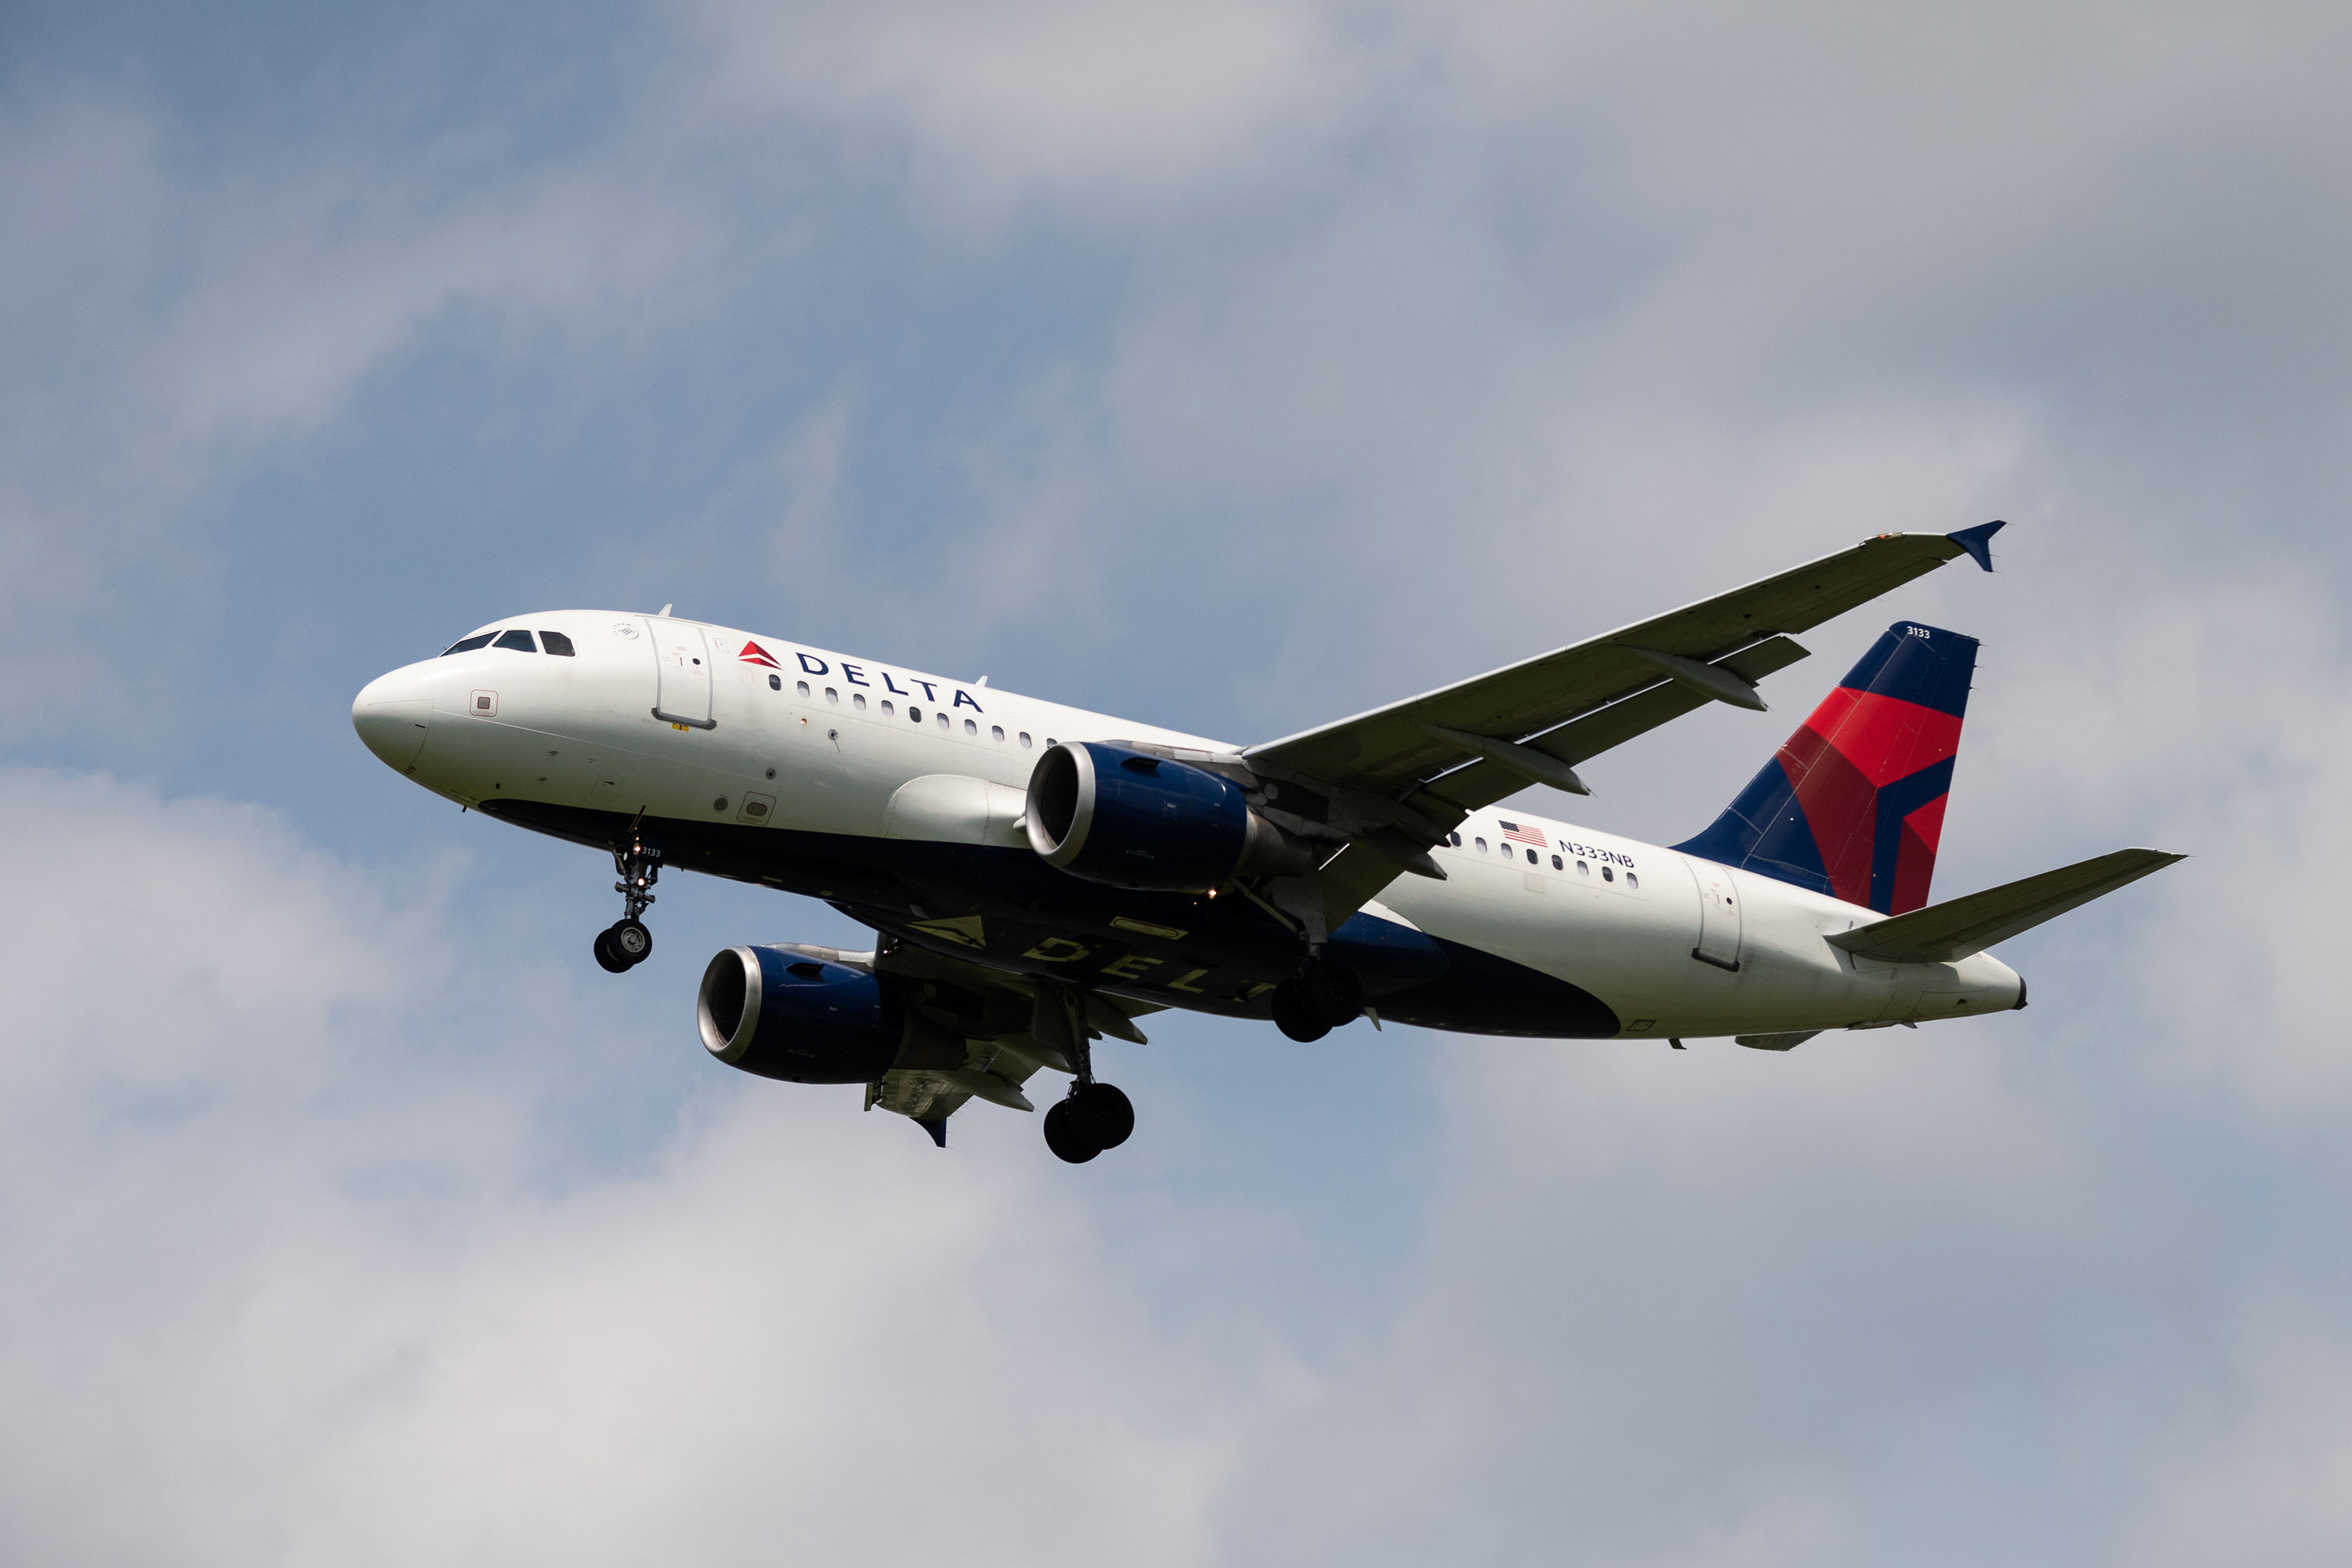 A Delta Airlines plane lands at Ronald Reagan Washington National Airport on June 5.